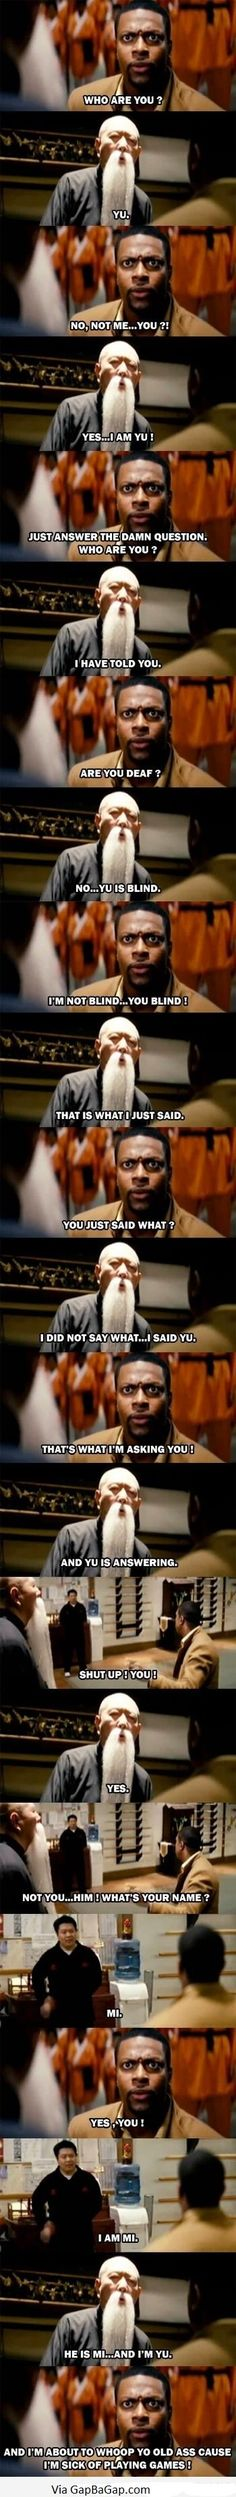 Funny Pictures Of Chris Tucker vs. Chinese Man Best Funny Pictures, Good Movies, Blind, Daily Inspiration, Scene, Funny Memes, Lol, Humor, Comics